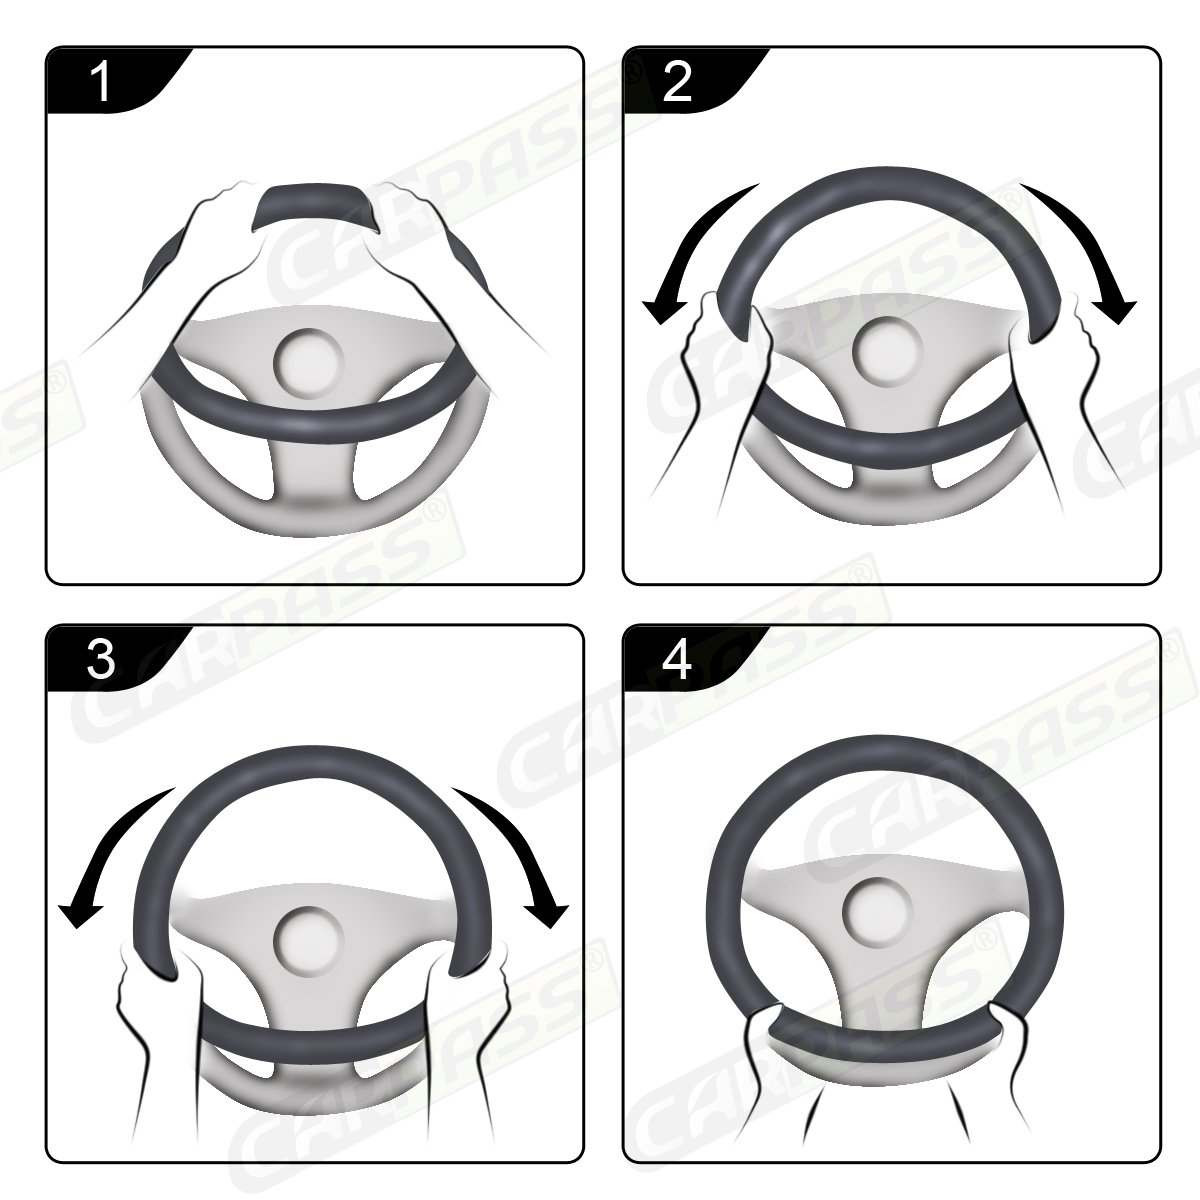 CAR PASS Double Layers Cool Universal Leather Steering Wheel Cover with Perforated Breathable Design,Fit for Cars,Suvs,Sedans,Trucks